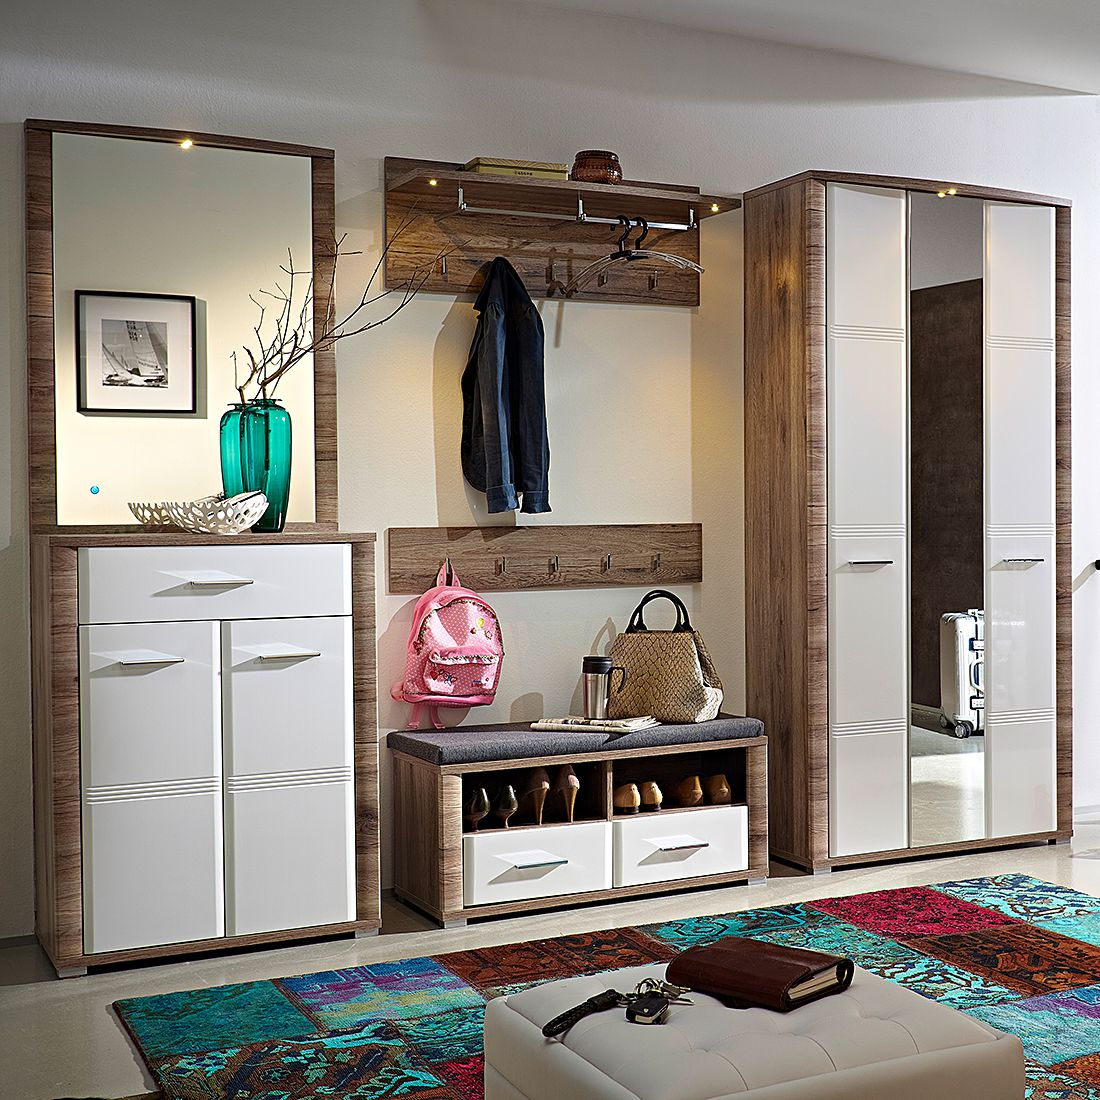 garderobe wandpaneel weiss garderobe halifax mit krben. Black Bedroom Furniture Sets. Home Design Ideas